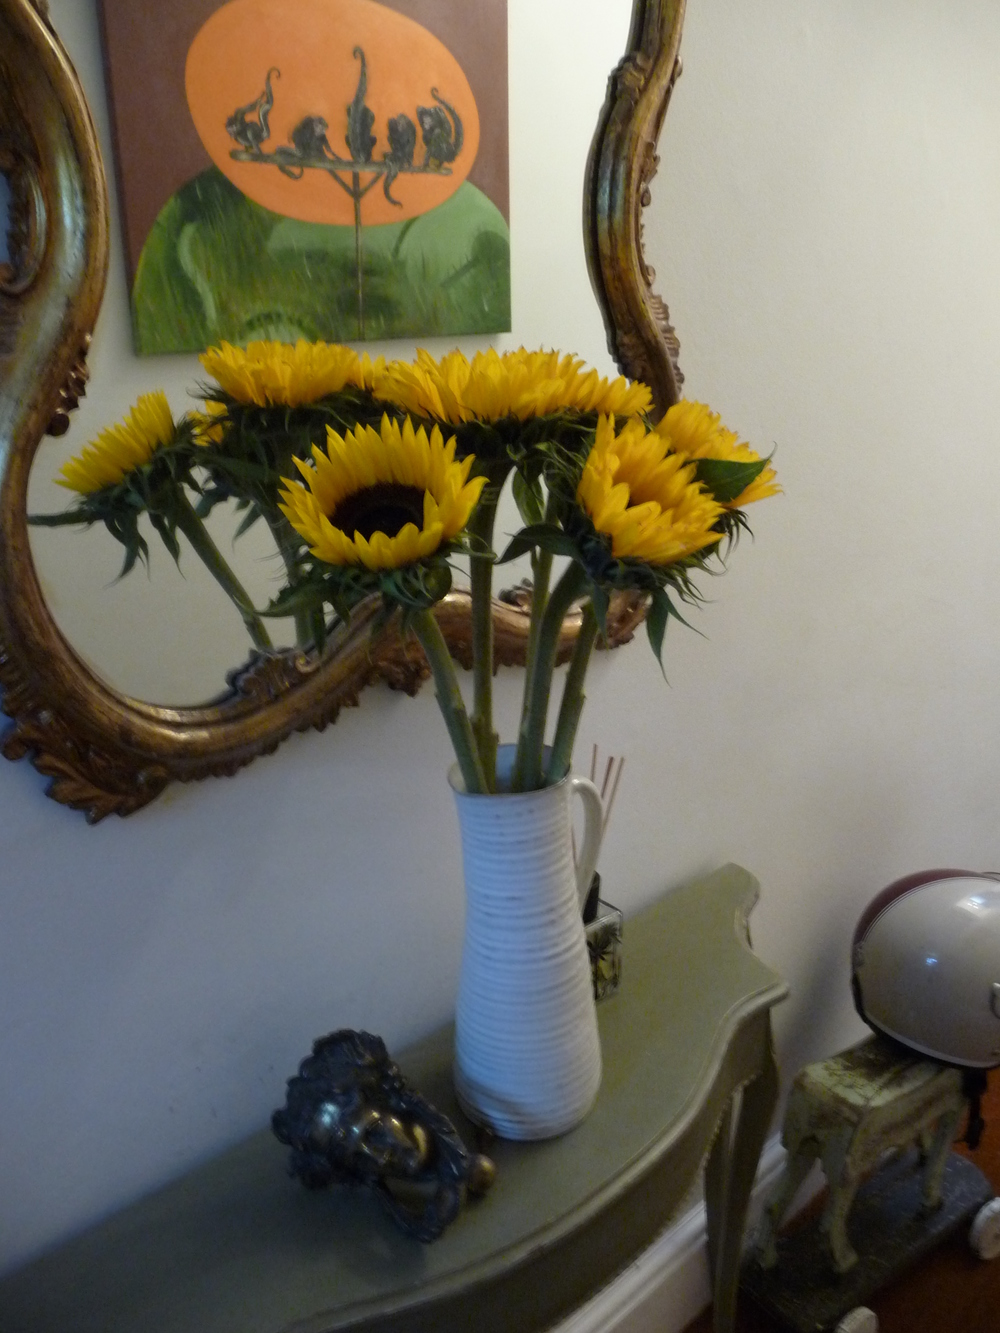 Good old Sunflowers, cheap as chips and last forever. Remove the leaves as they take too much sustenance from the flower. Cut vertically up the stems as well as the usual diagonal.  Beware the drink loads so you need to top up regularly